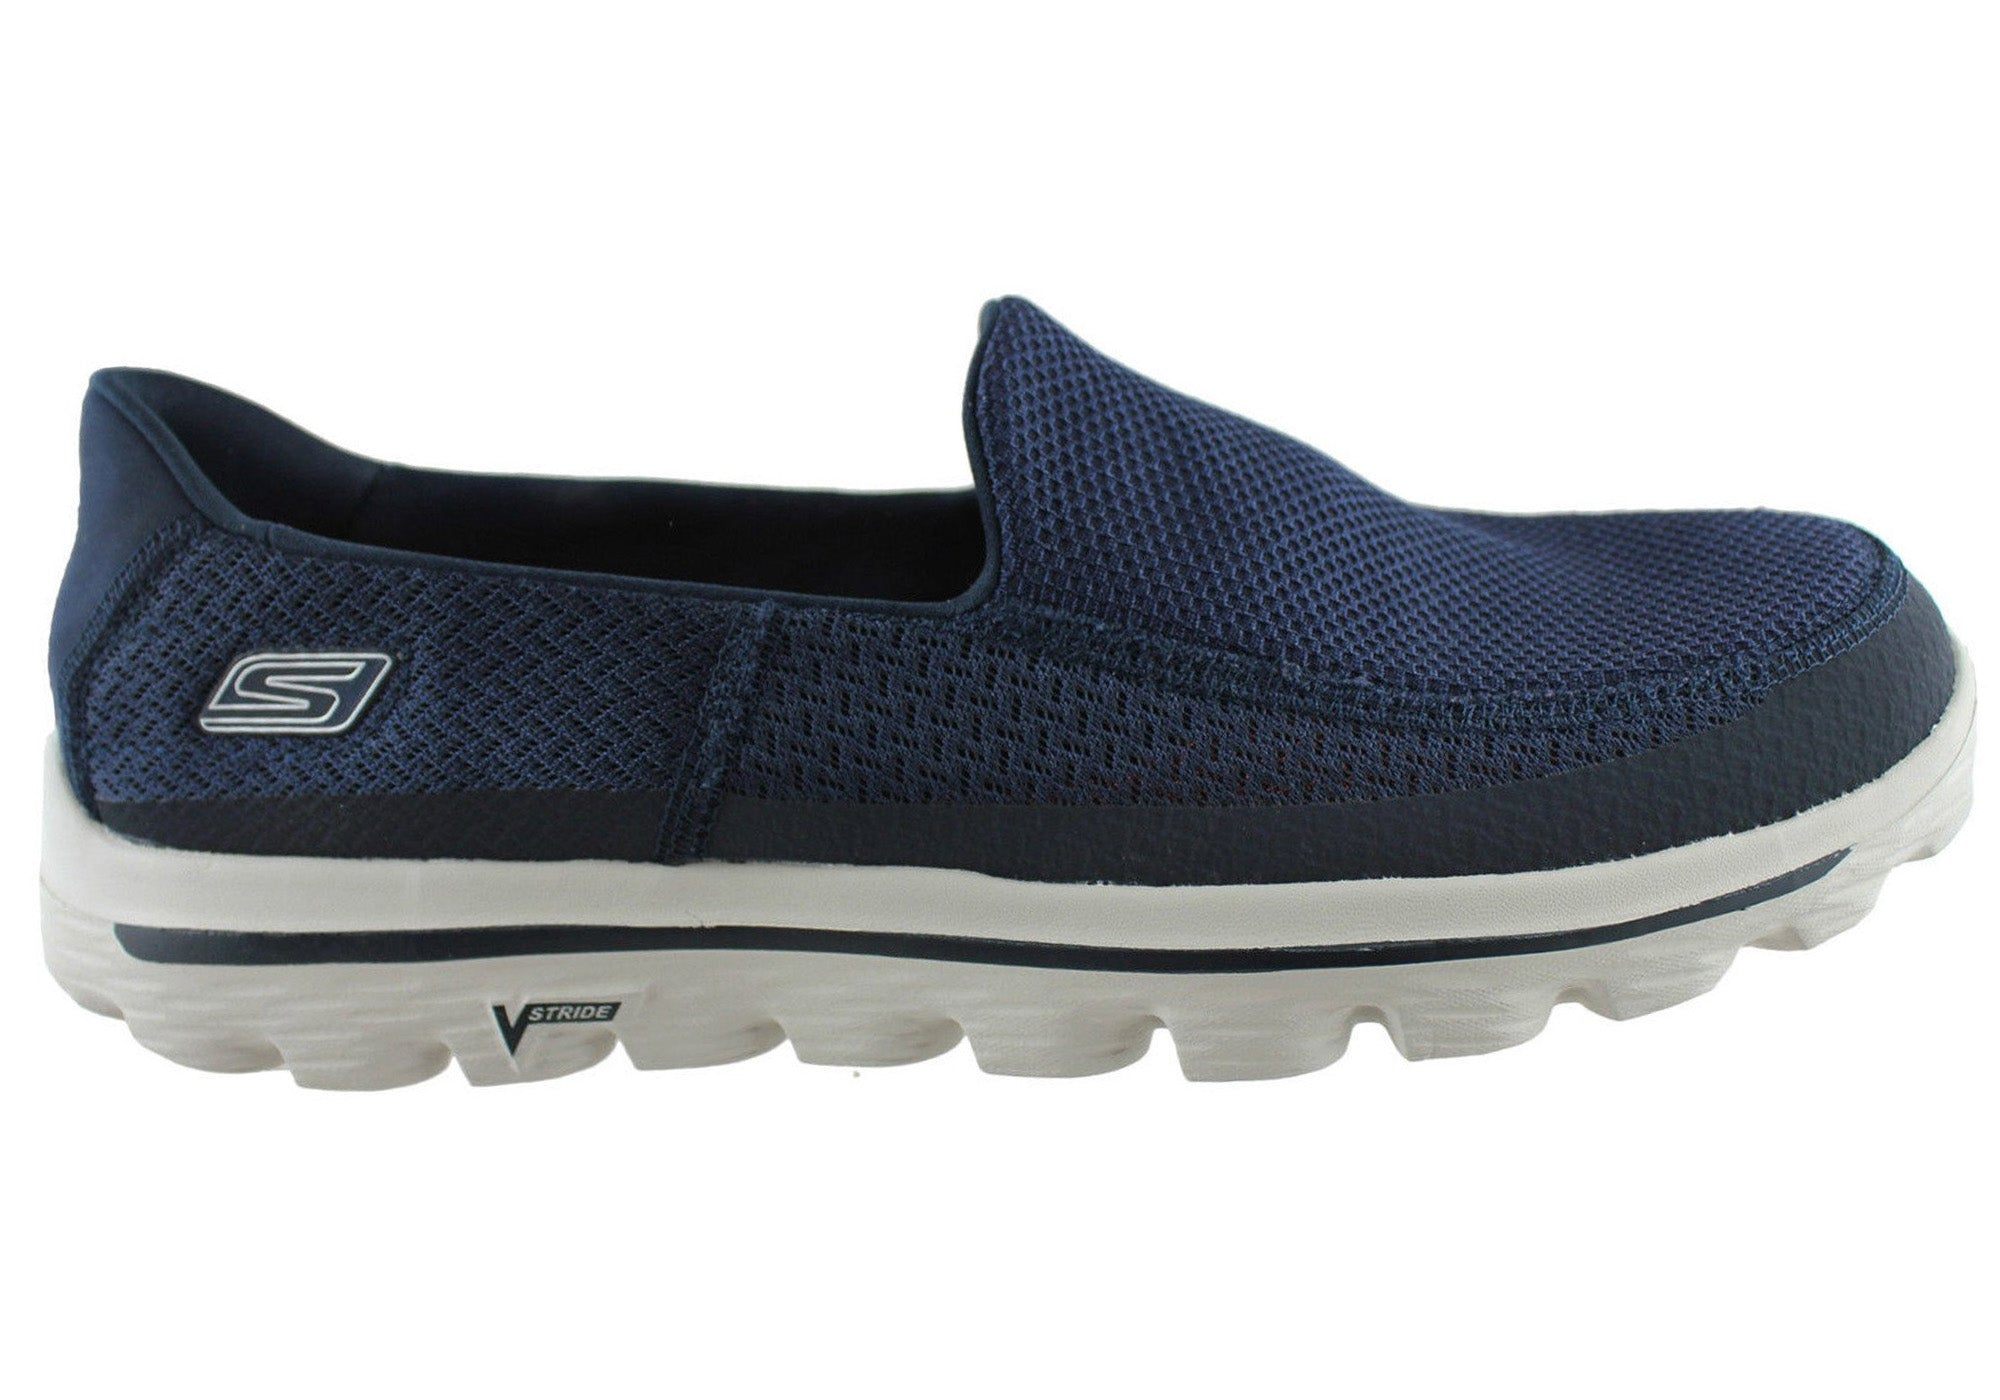 03c4112429d5e NEW SKECHERS GO WALK 2 MENS COMFORTABLE SLIP ON CASUAL SHOES | eBay